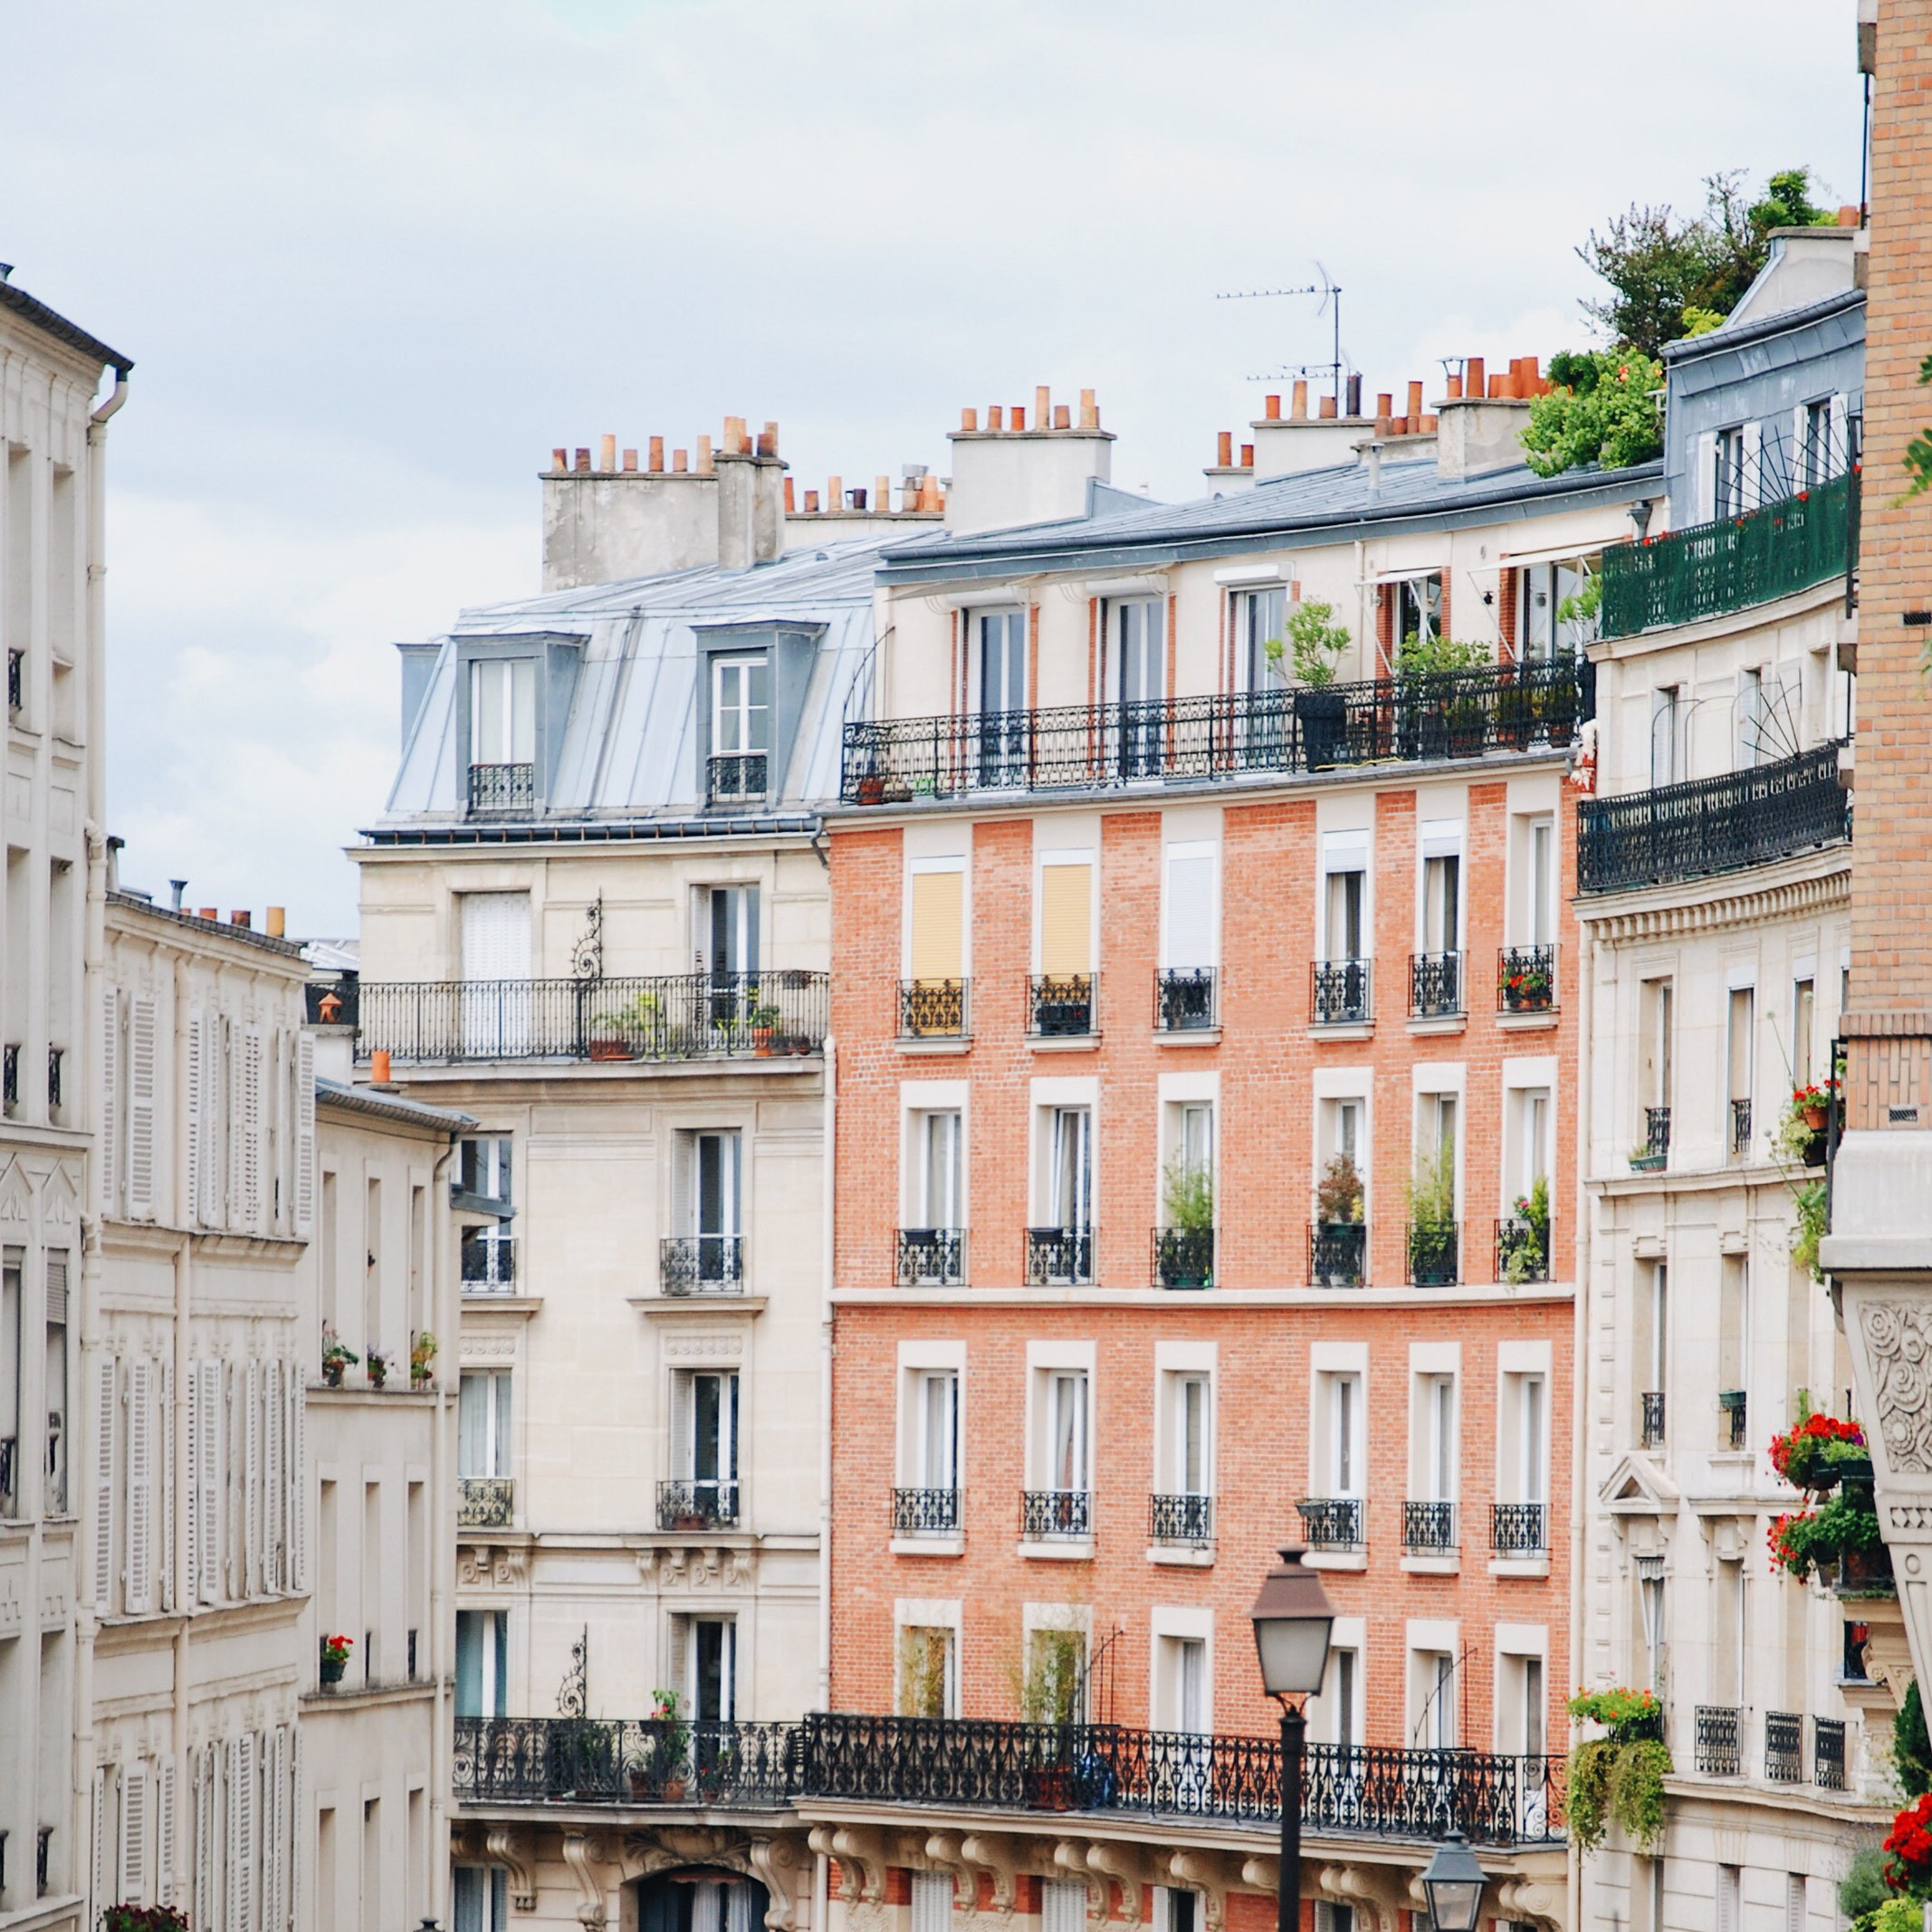 Paris is famous for its zinc roofs, which weather into a gorgeous patina and can last for centuries. Photo by VB Fetter, Unsplash.